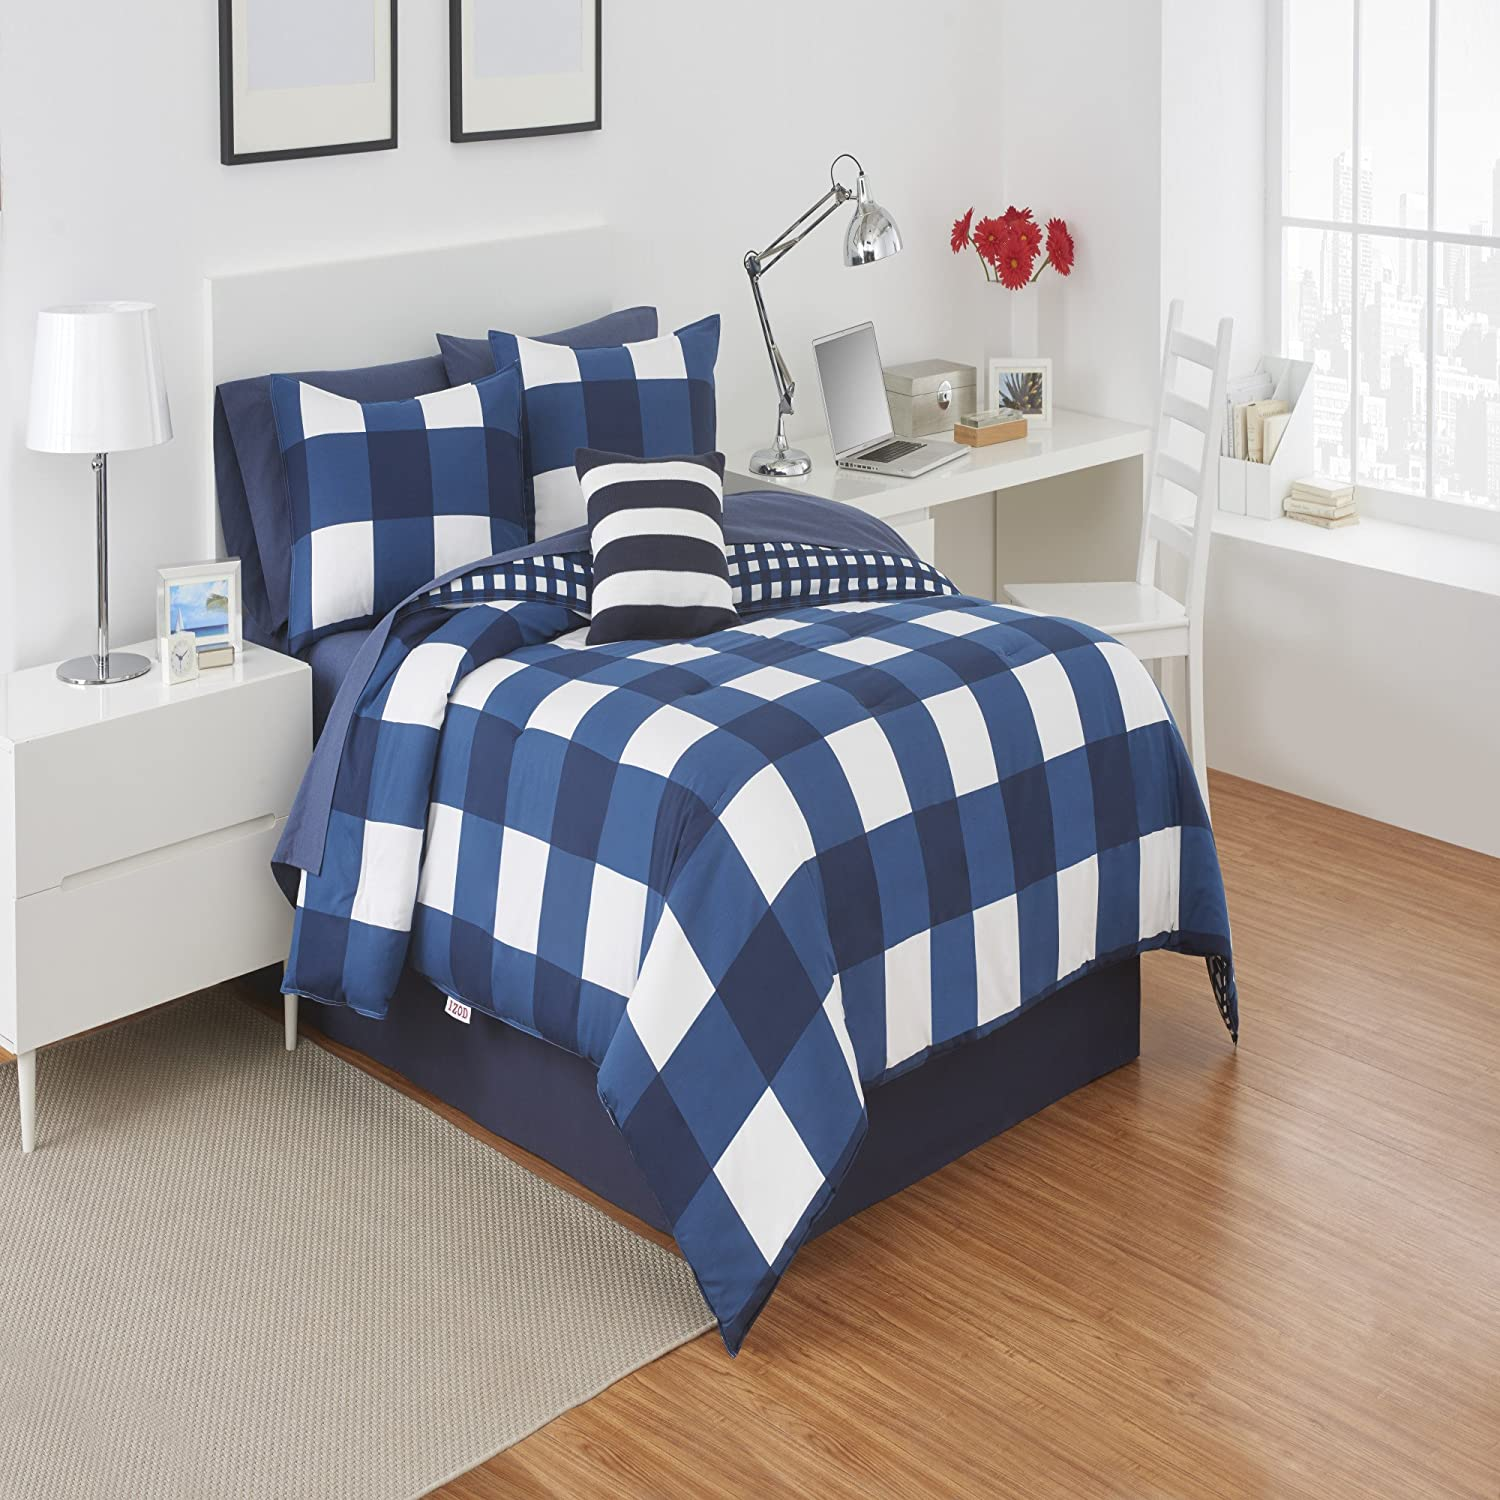 comforter unforgettable black bedspread images nordstrom white red baby literarywondrous bedding and check buffalo gingham checkered plaid